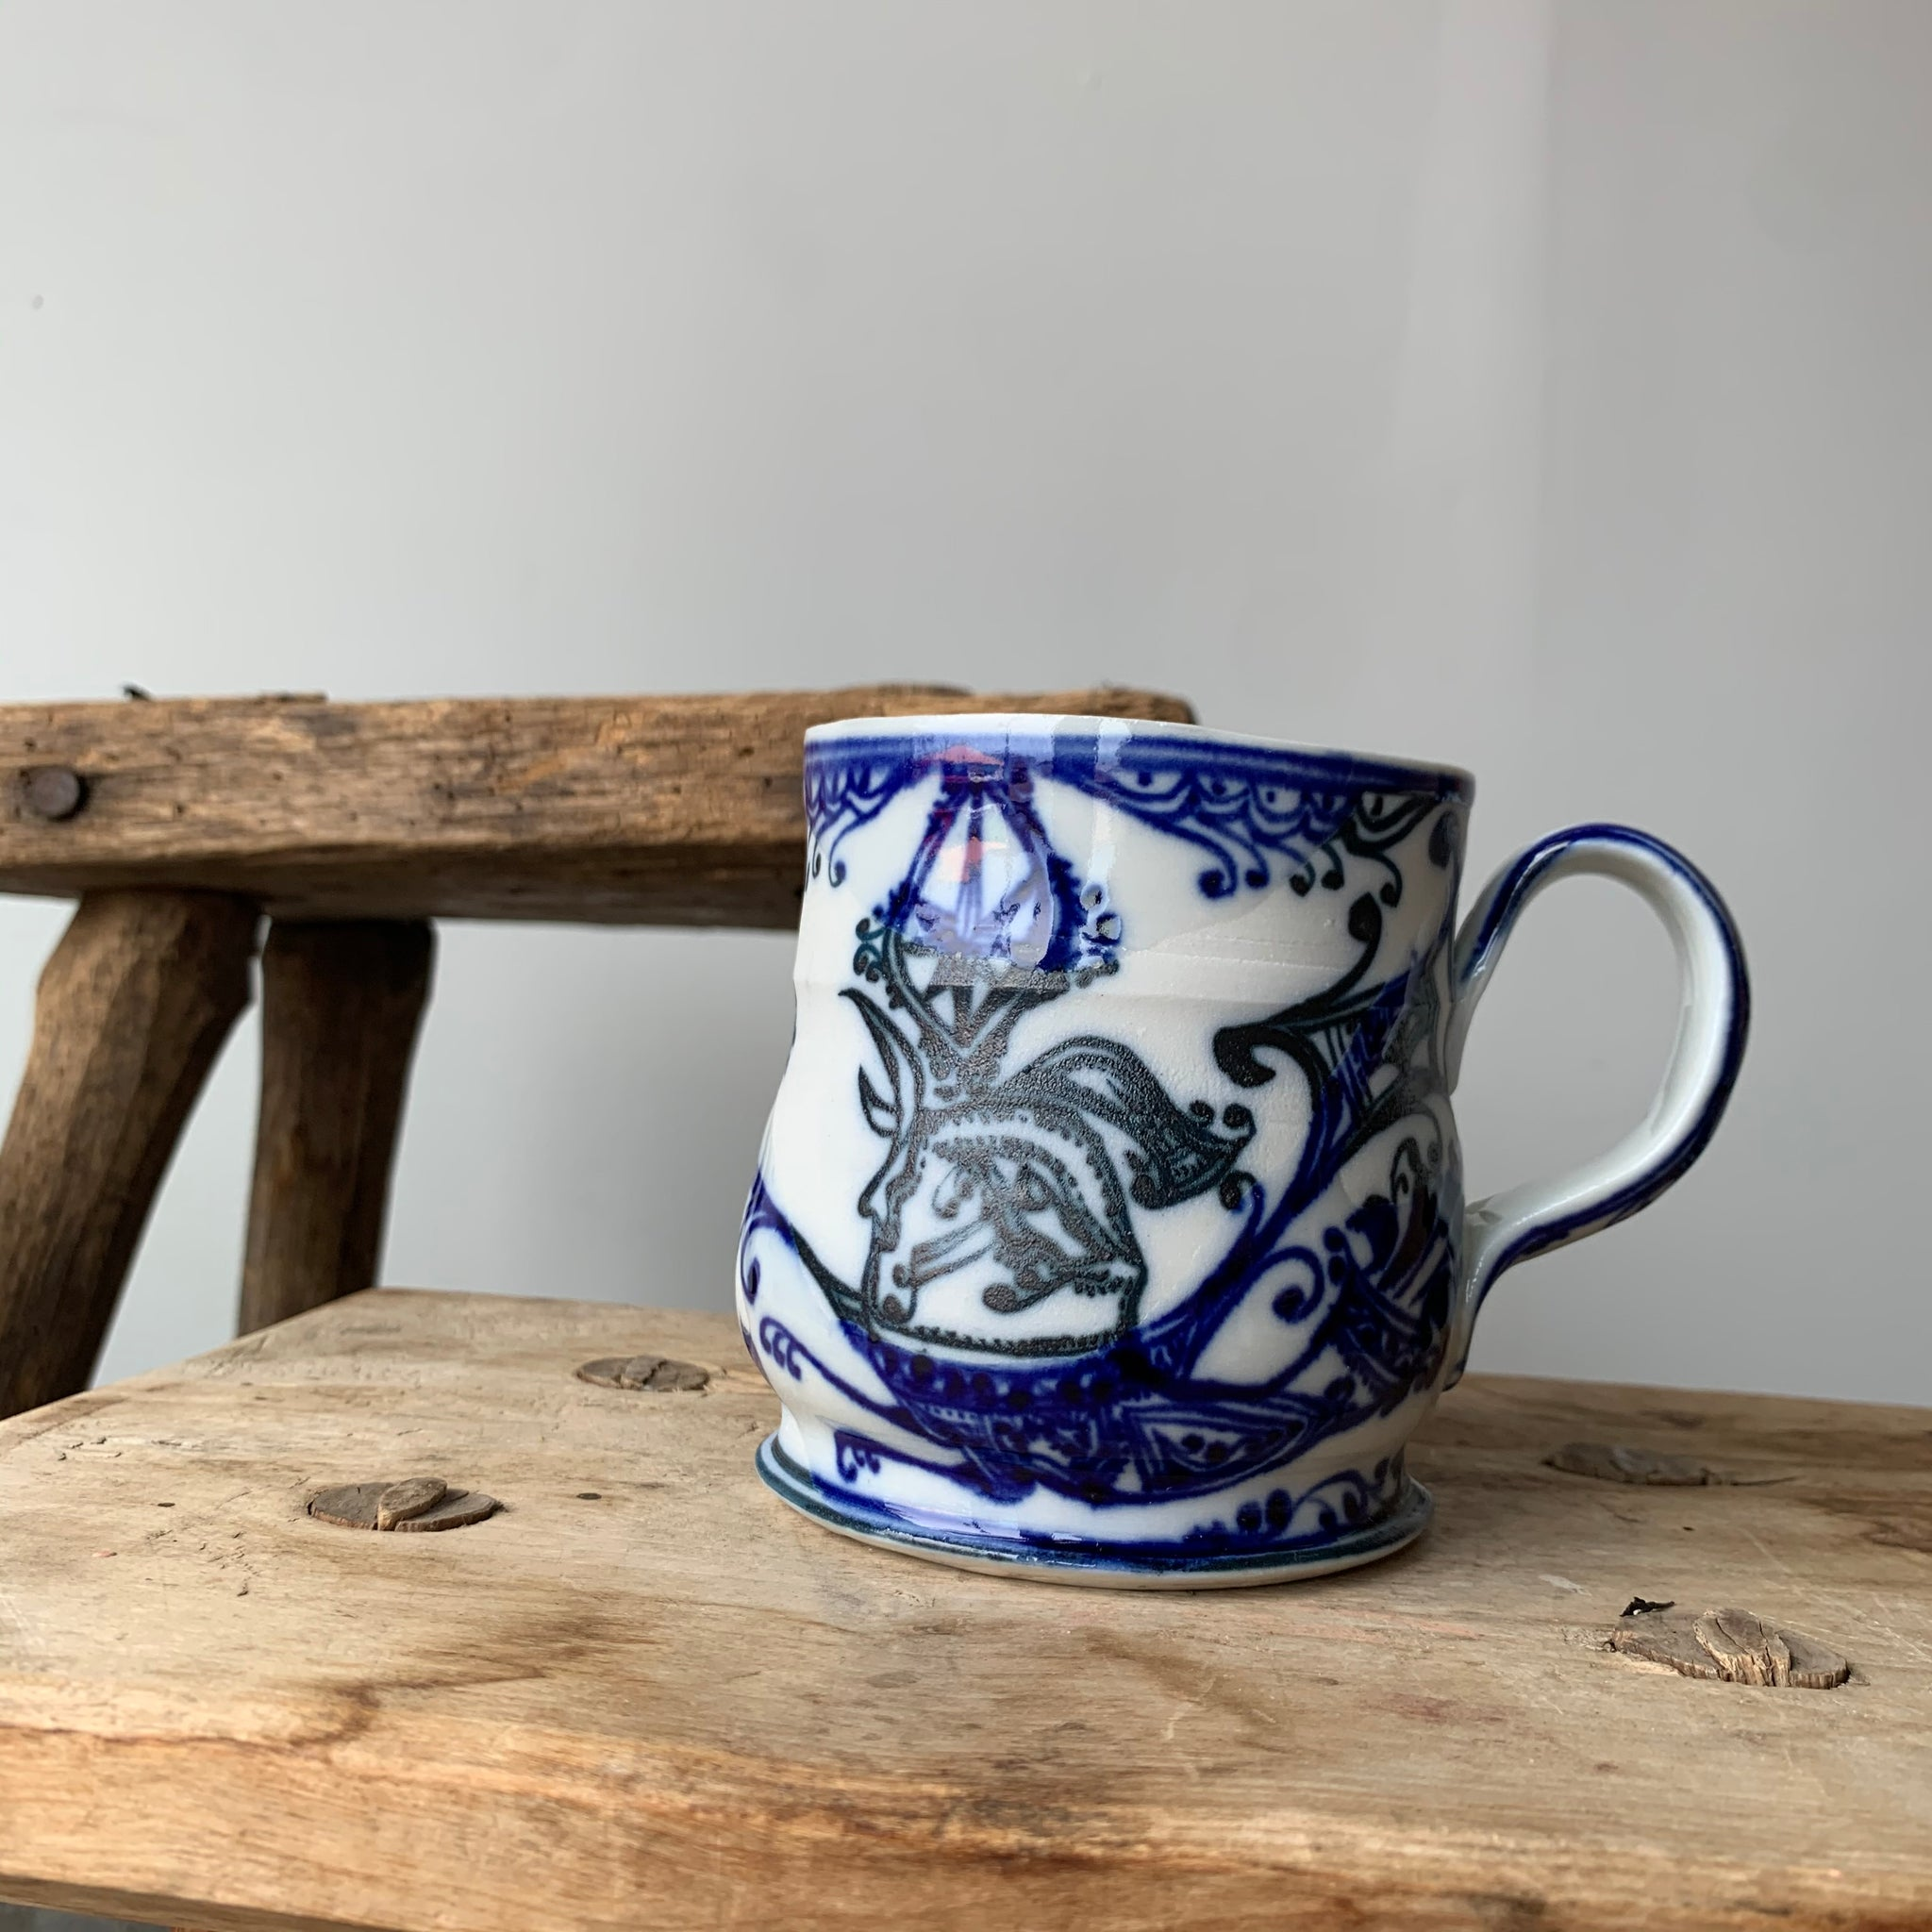 Porcelain Animal Mug 9 by David Swenson